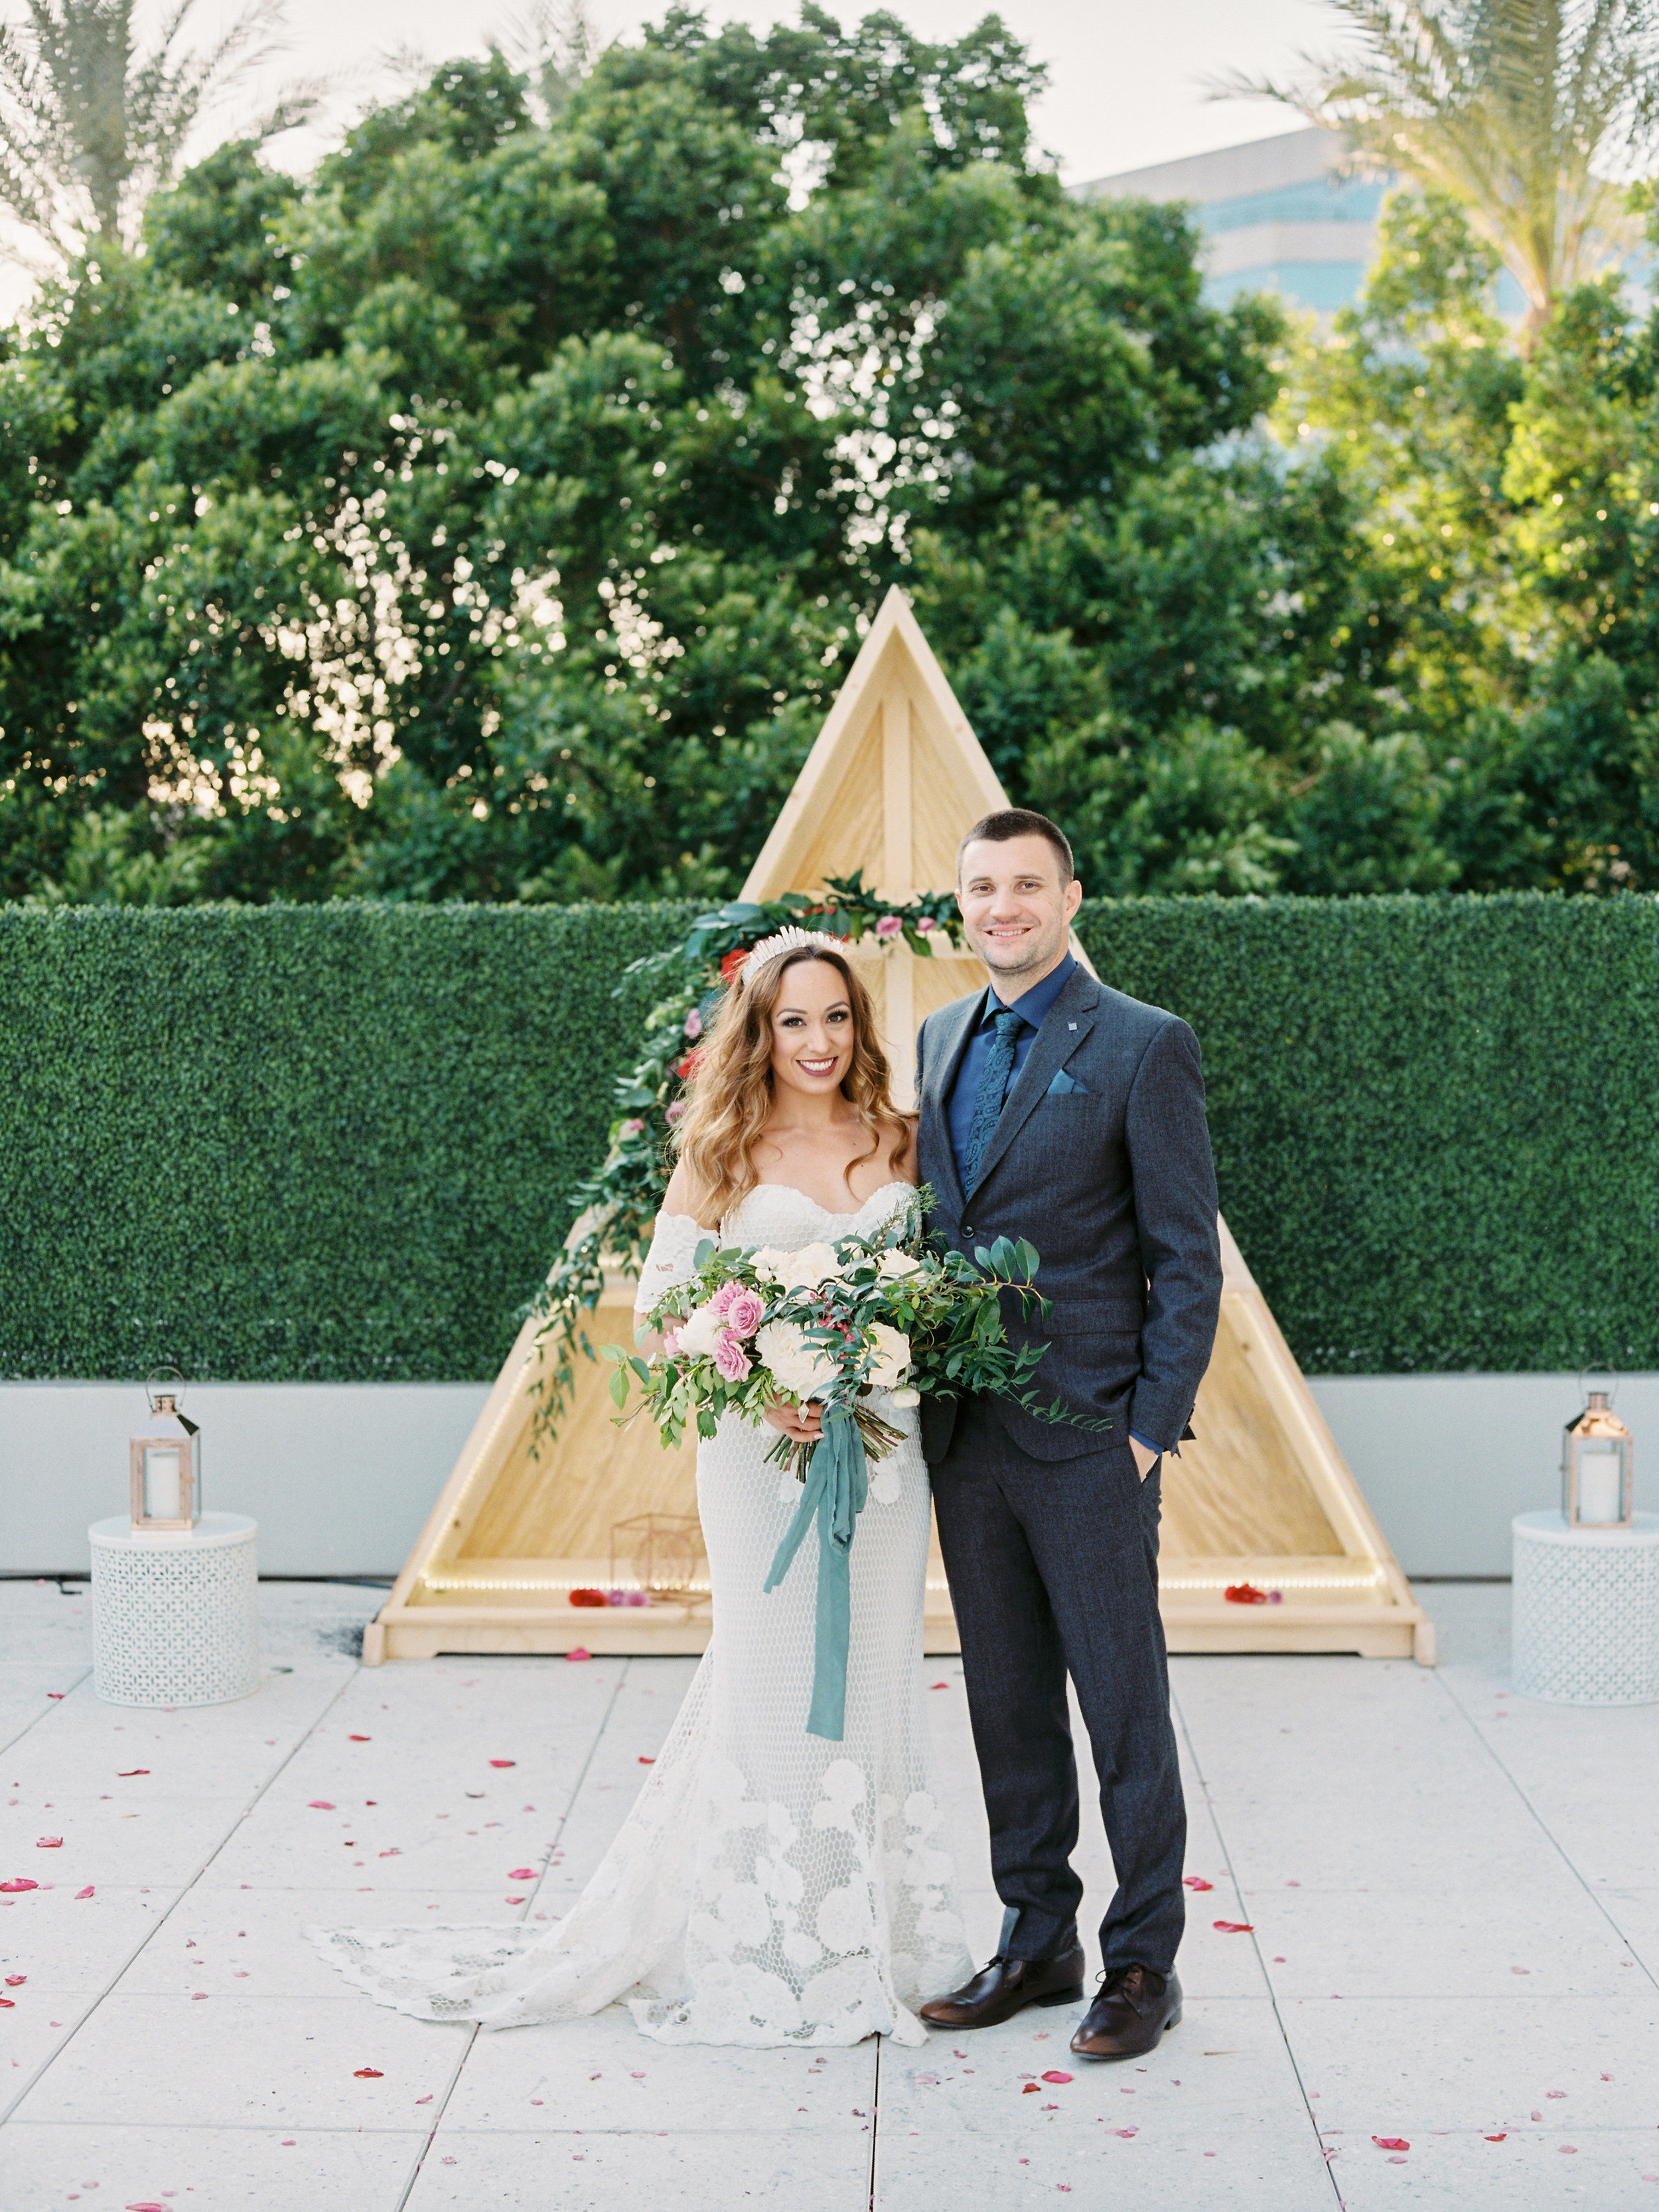 Noelle + Rich's Camby Vow Renewal - Ceremony Portraits